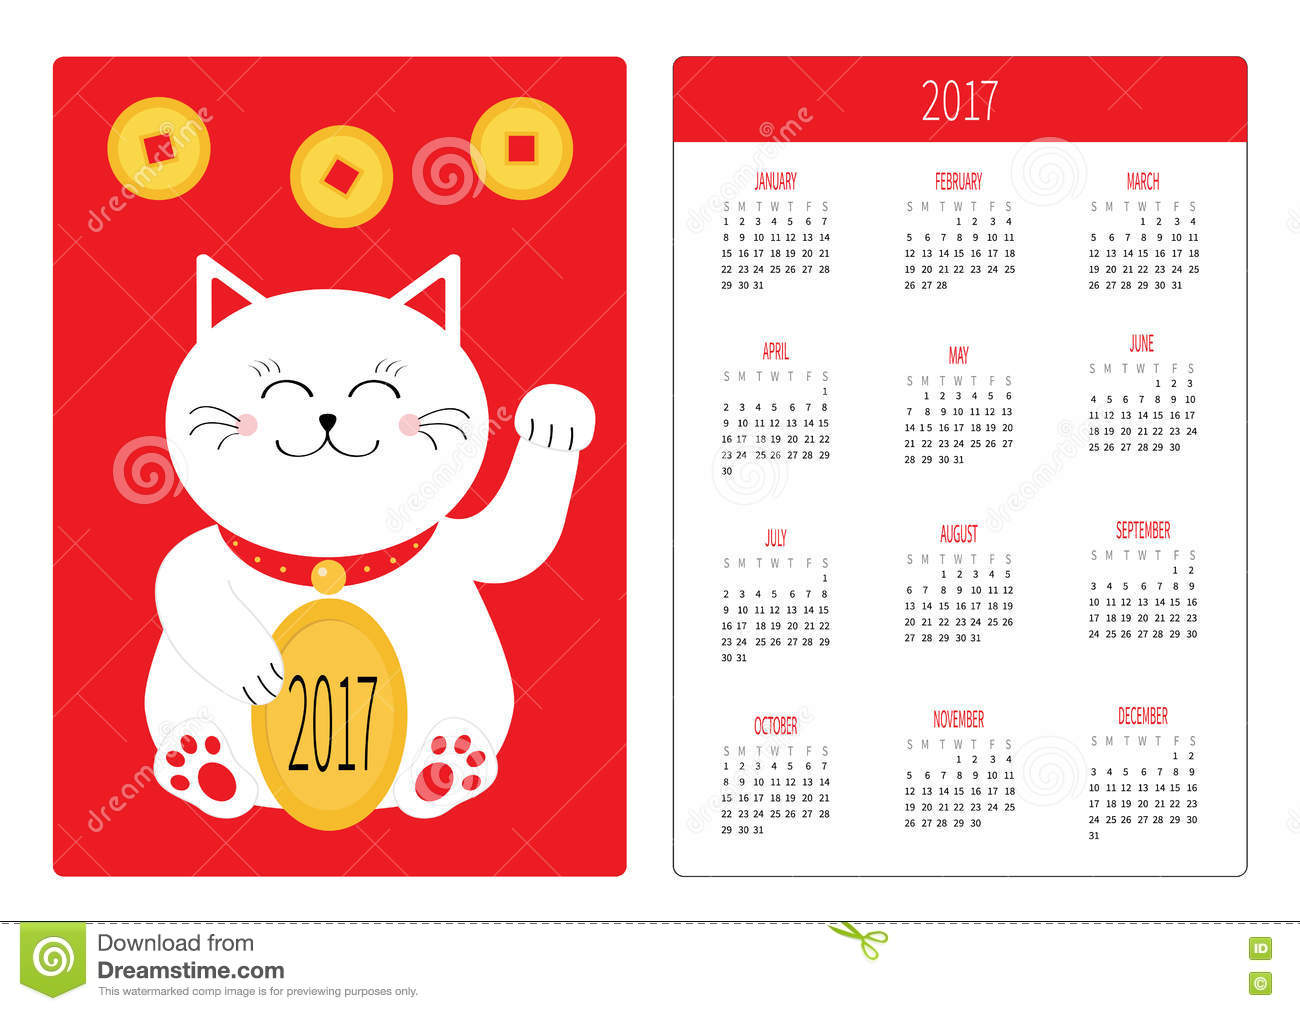 pocket schedule template - pocket calendar 2017 year week starts sunday flat design